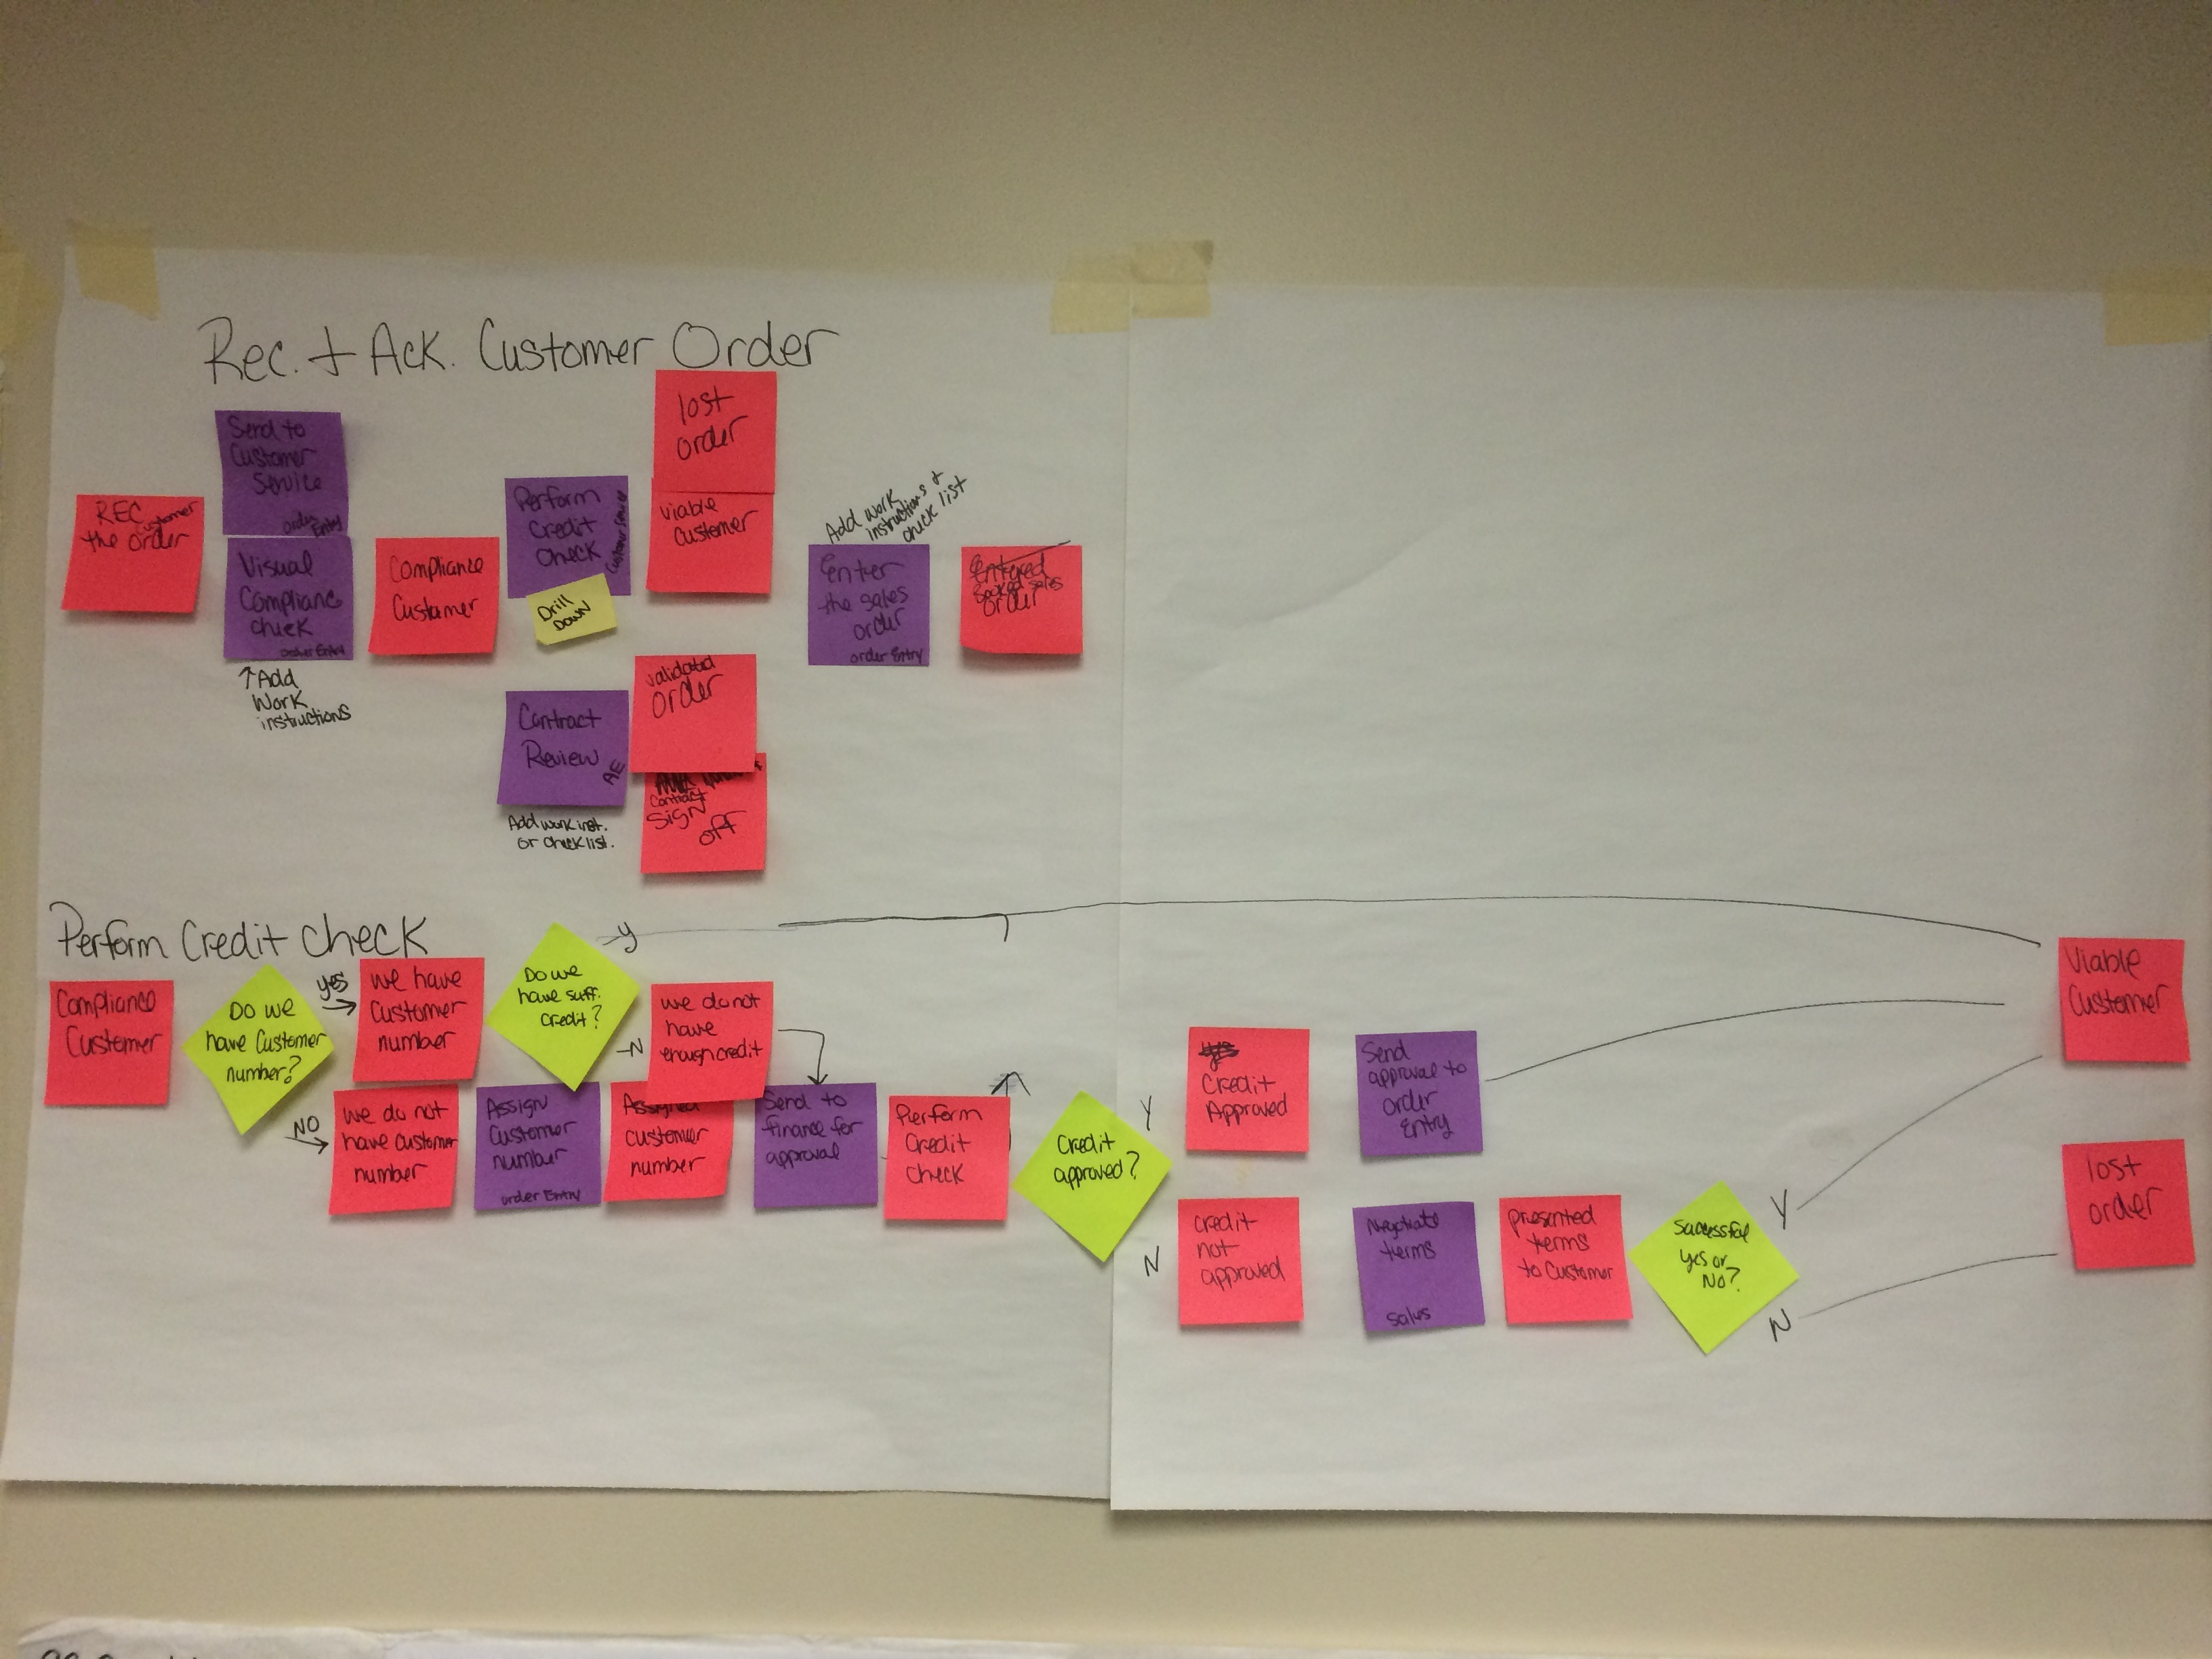 Process mapping on paper